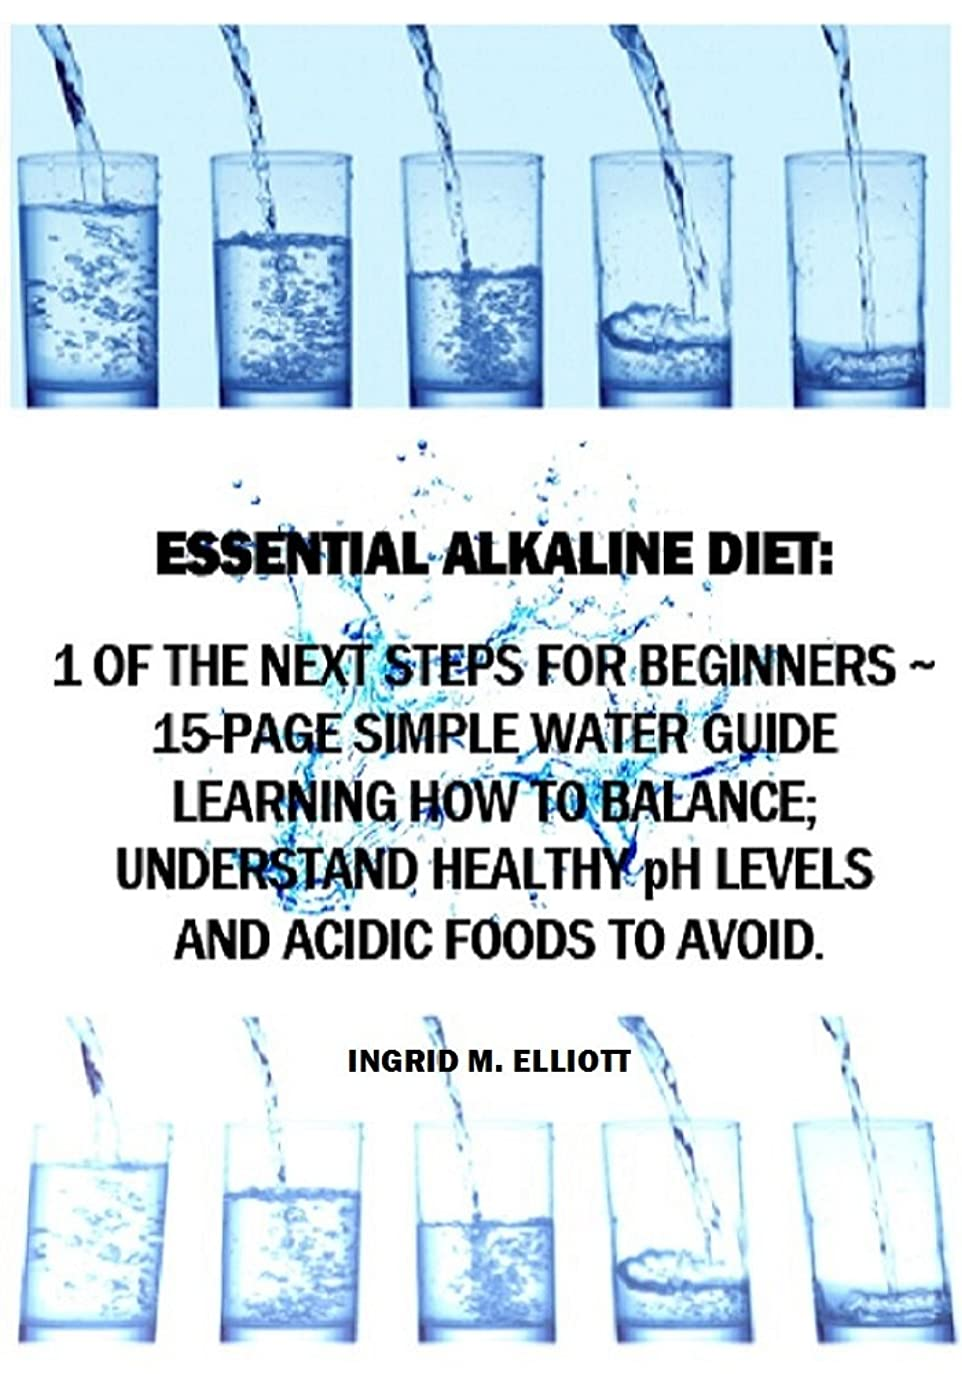 Essential Alkaline Diet: 1 of the Next Steps for Beginners - 15-Page Simple Water Guide Learning How to Balance, Understand Healthy pH Levels and Acidic ... (Blood Type Information) (English Edition)